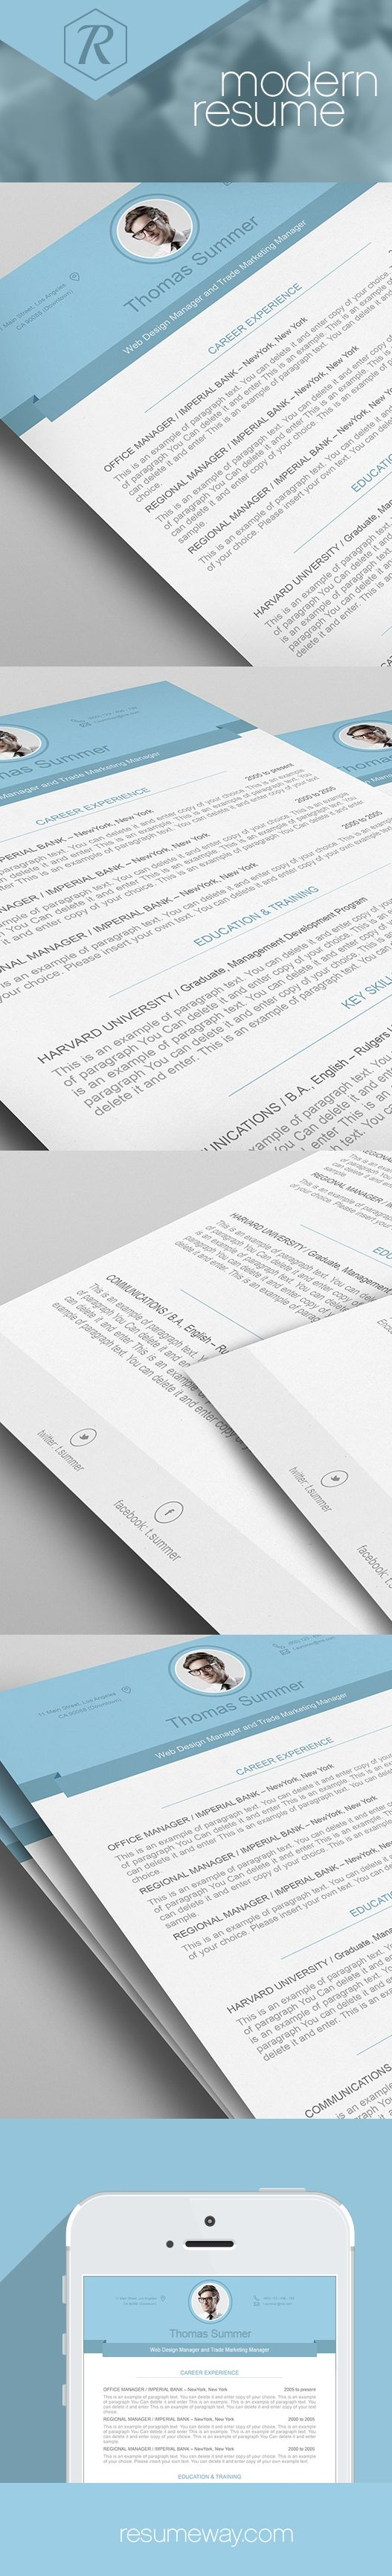 17 best images about modern resume templates modern resume template premium line of resume cover letter templates edit microsoft word apple pages resumeway modern resume